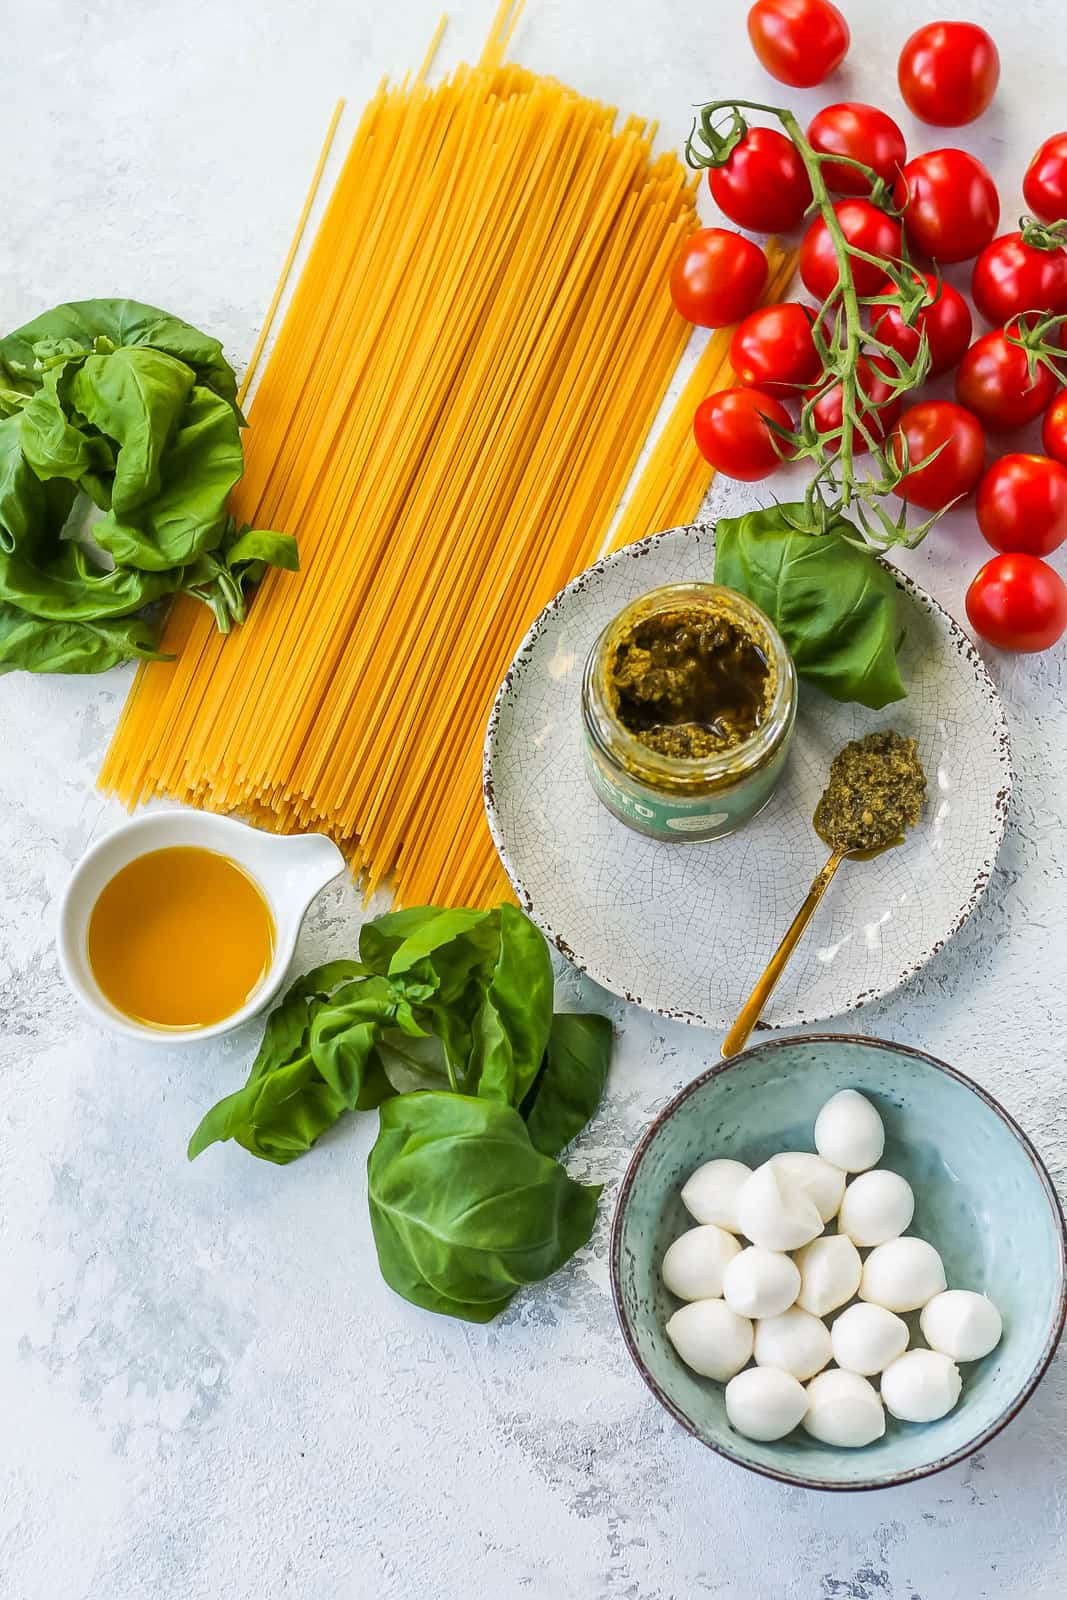 spaghetti, basil, olive oil, jarred pesto, cherry tomatoes, and mozzarella balls on a grey background